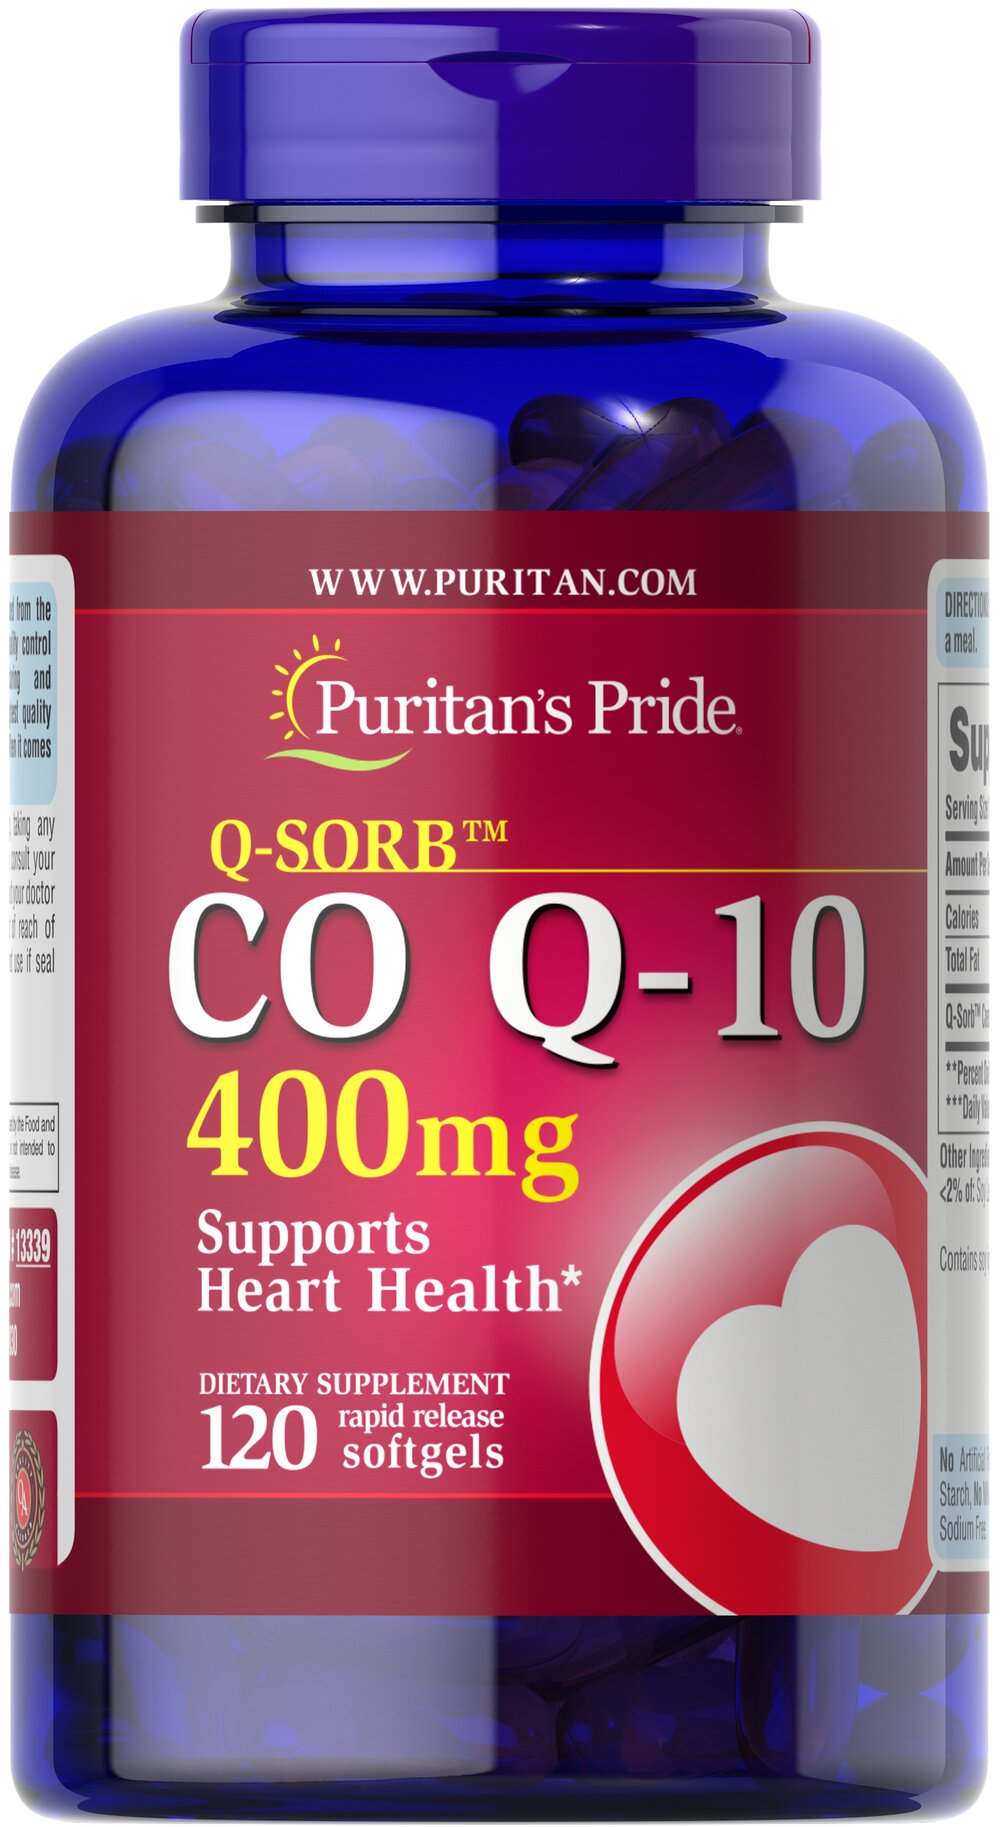 C0 Q-10 400 mg <p>Puritan's Pride Q-Sorb™ Co Q-10 (coq10) provides antioxidant support for your heart and ensures potency and purity.**</p> <p>Our Q-Sorb™ Co Q-10 is hermetically sealed in rapid release softgels to provide superior absorption</p> <p>Contributes to your heart and cardiovascular wellness**</p> <p>Helps support blood pressure levels already within a normal range**</p> <p>Promotes energy production within your heart, brain, and m